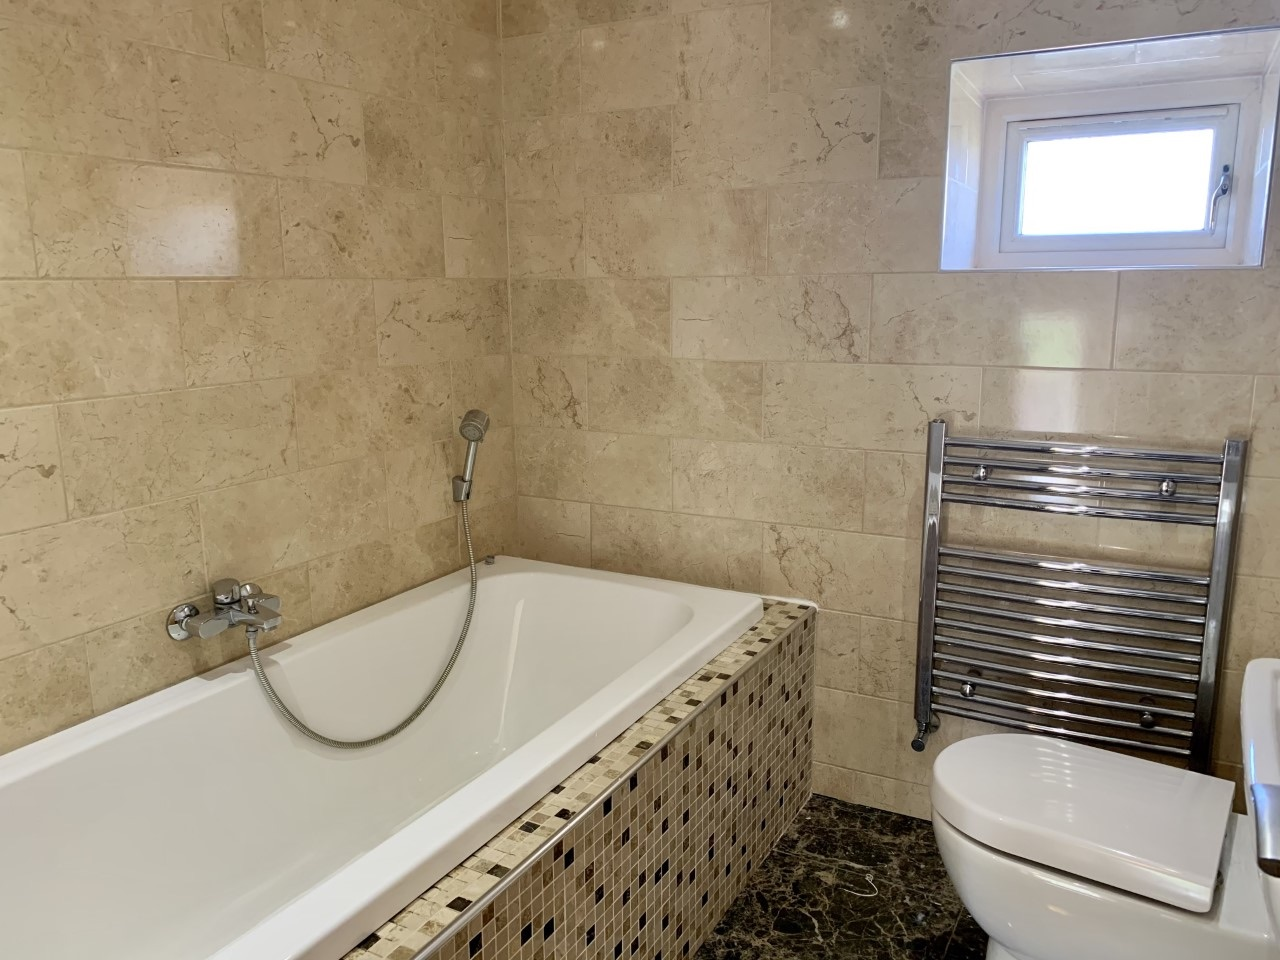 3 bedroom detached house For Sale in Todmorden - Photograph 25.